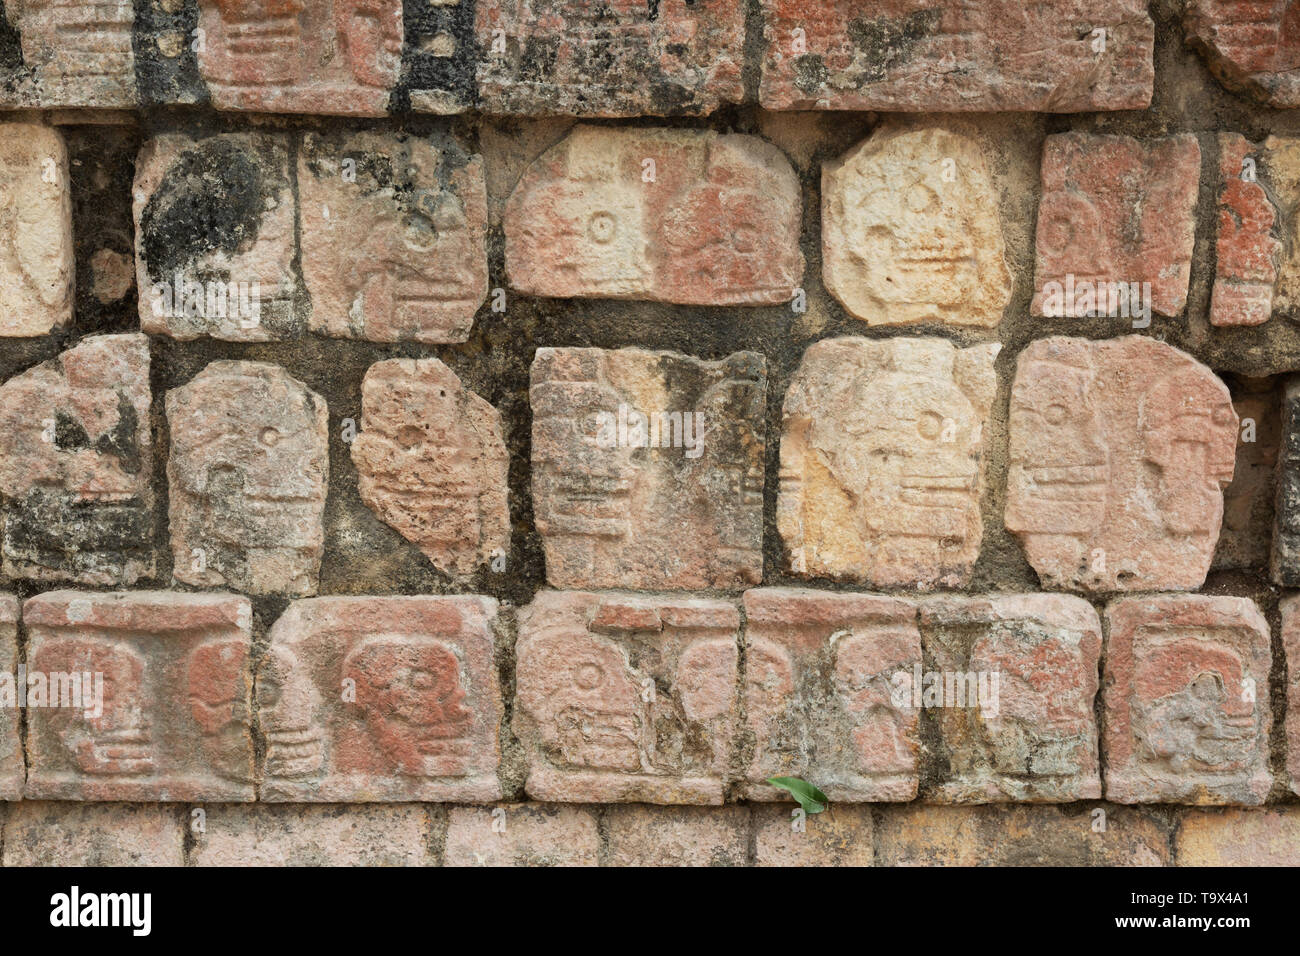 Close up of the Skull Platform, where the heads of Mayan victims, usually defeated enemies, were displayed; Chichen Itza, Mexico Latin America Stock Photo